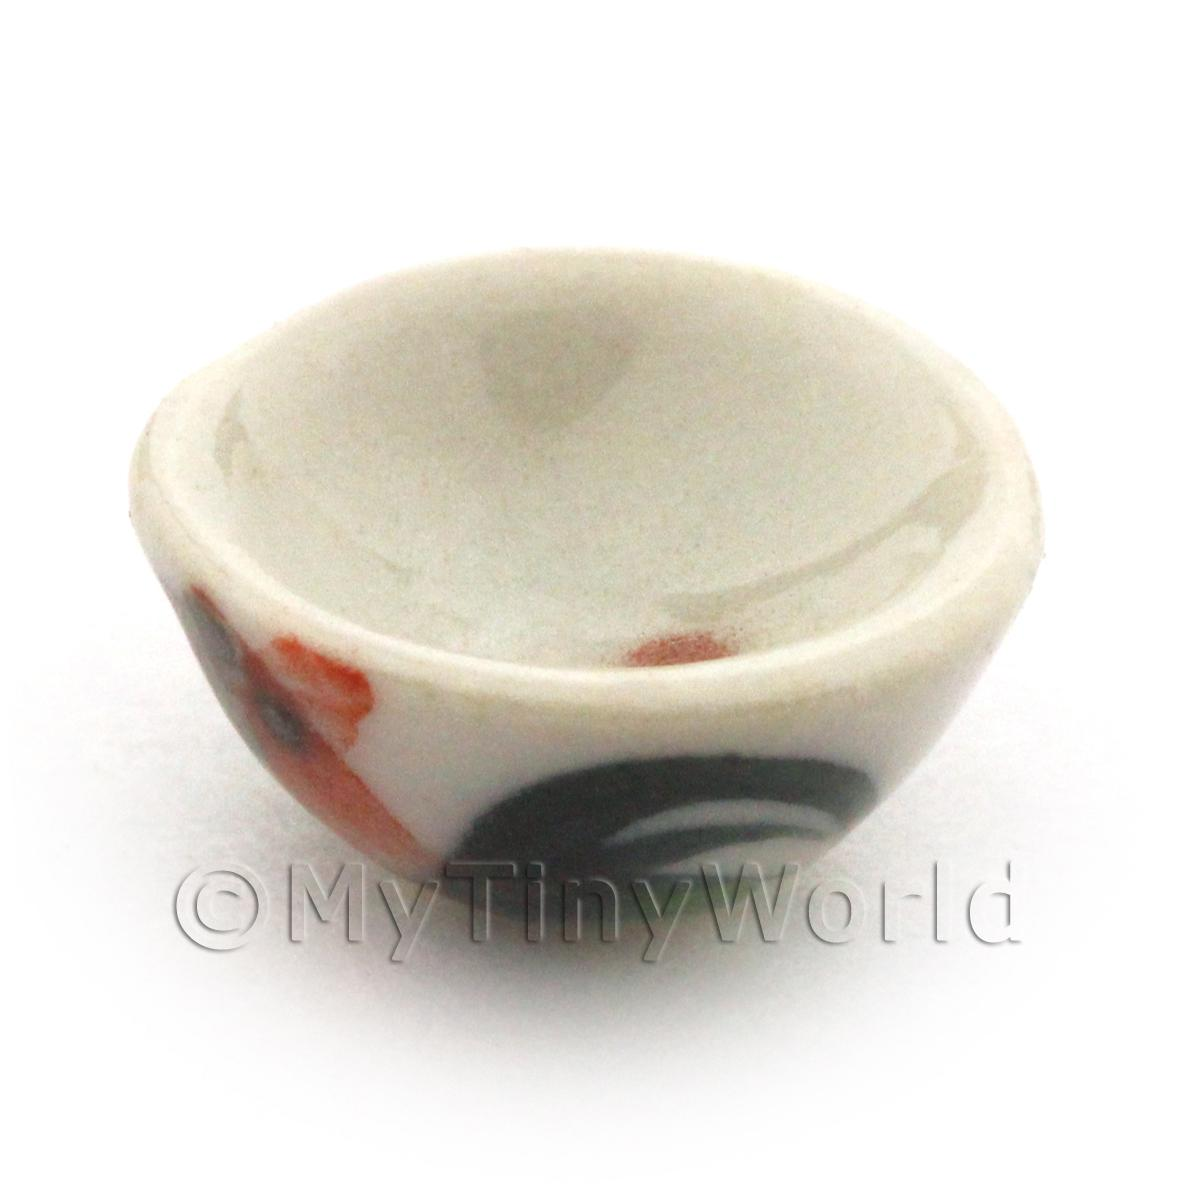 11mm Dolls House Miniature White Ceramic Cockerel Bowl